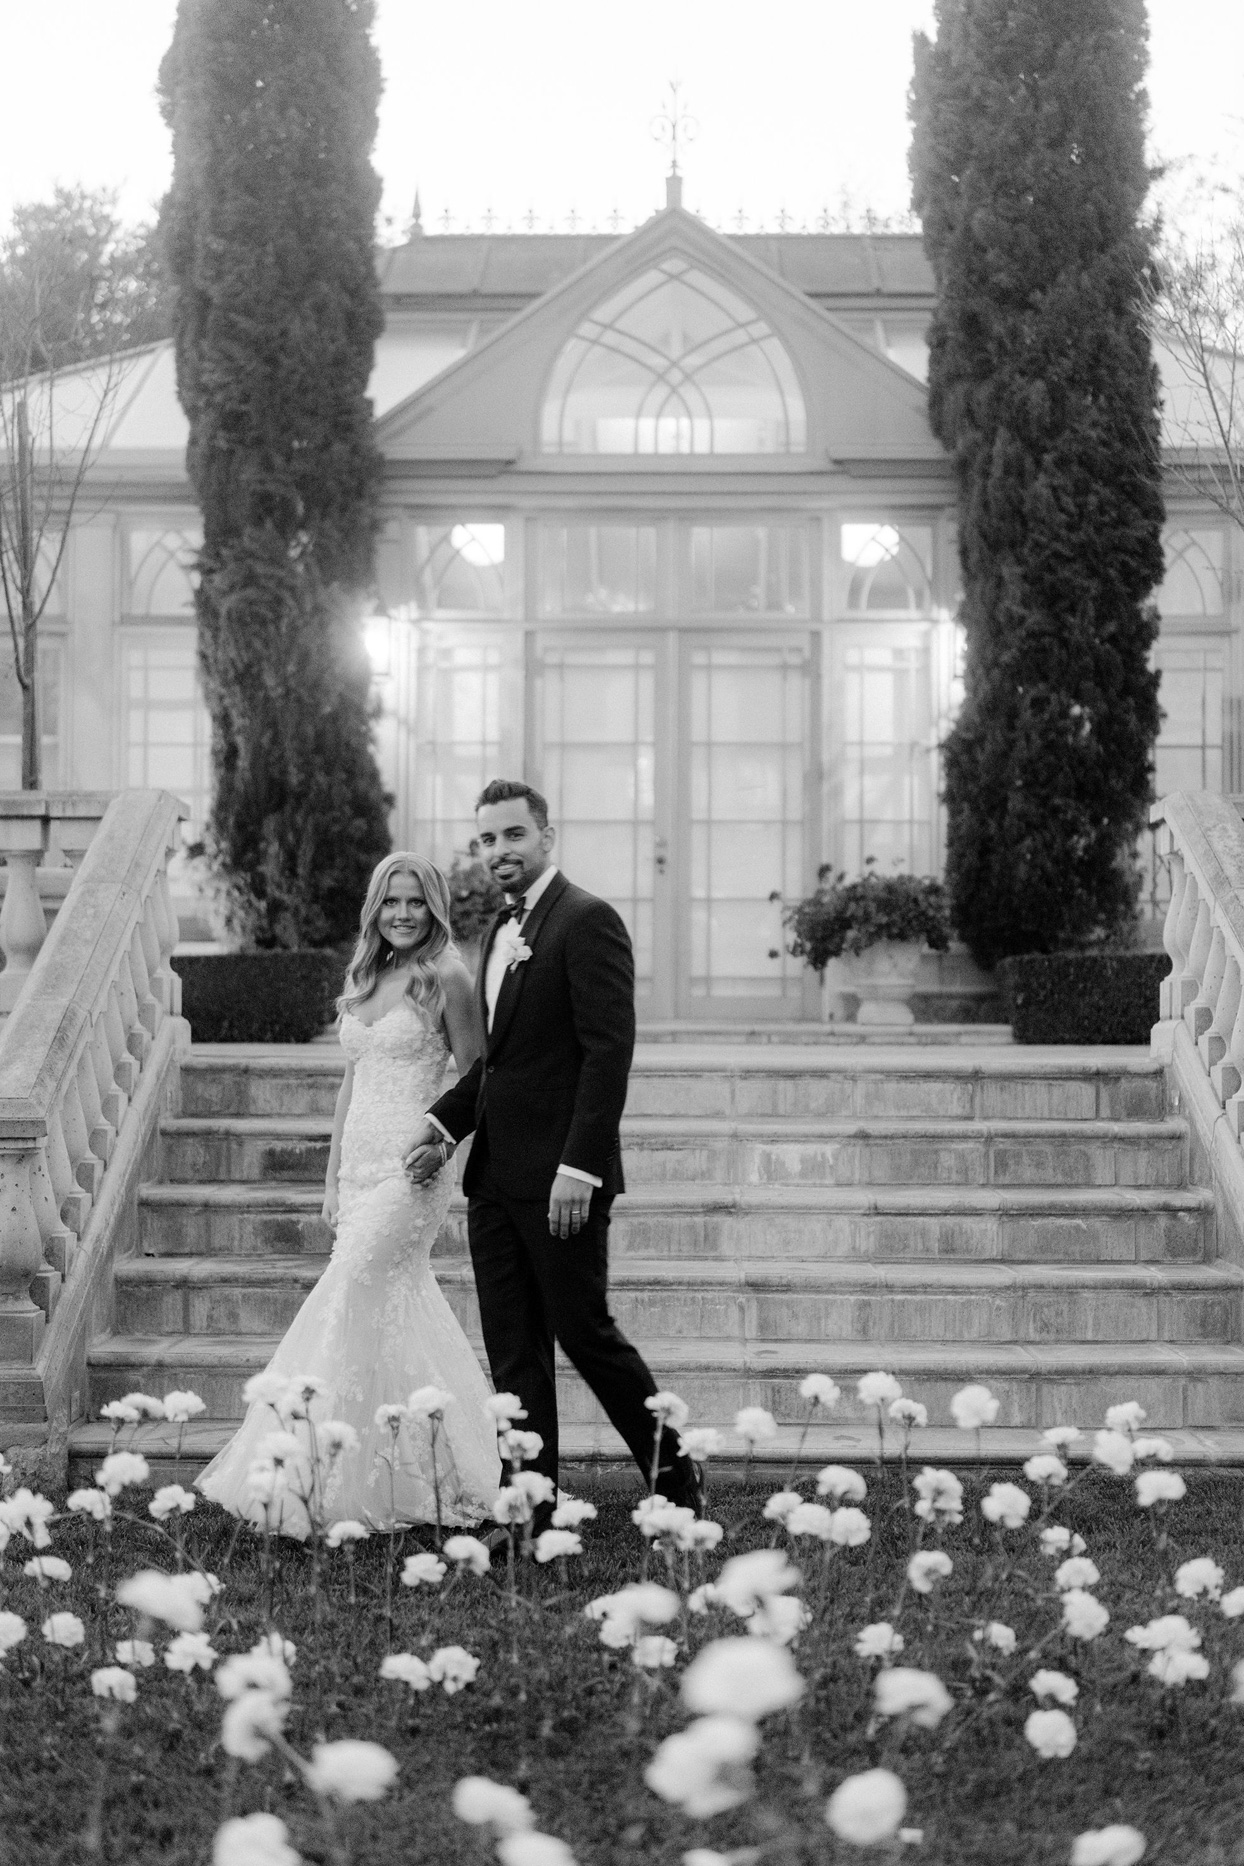 wedding couple walking at foot of stone staircase